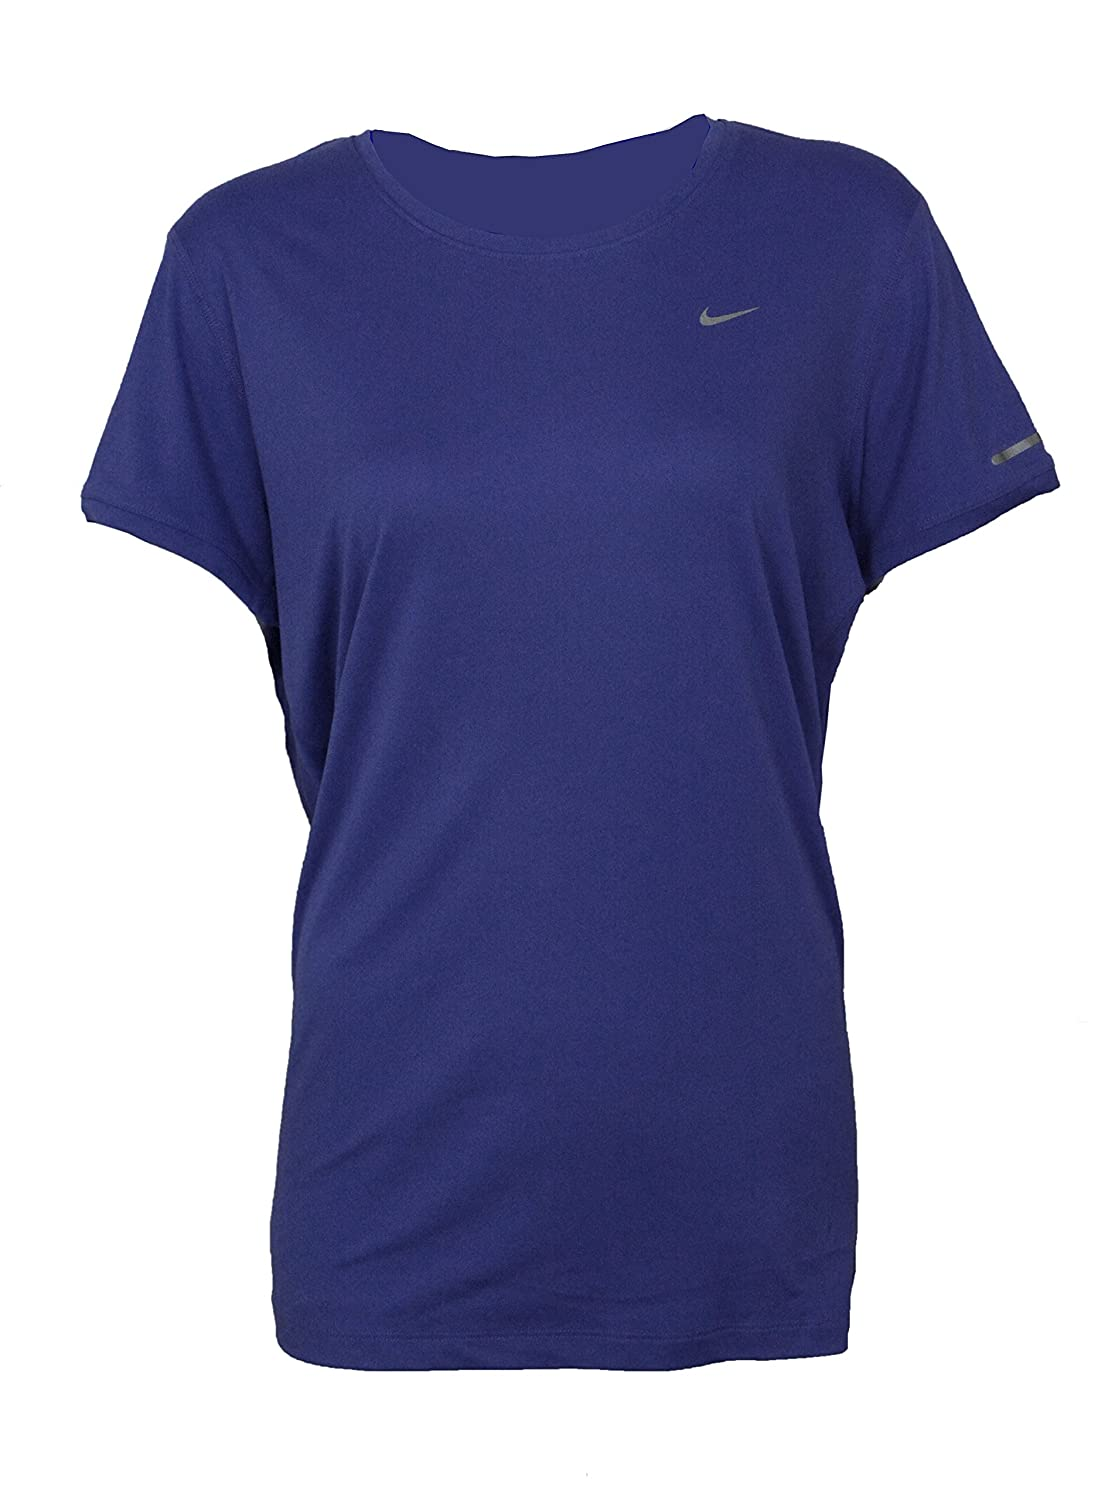 Nike Dri Fit SS Crew Womens Top